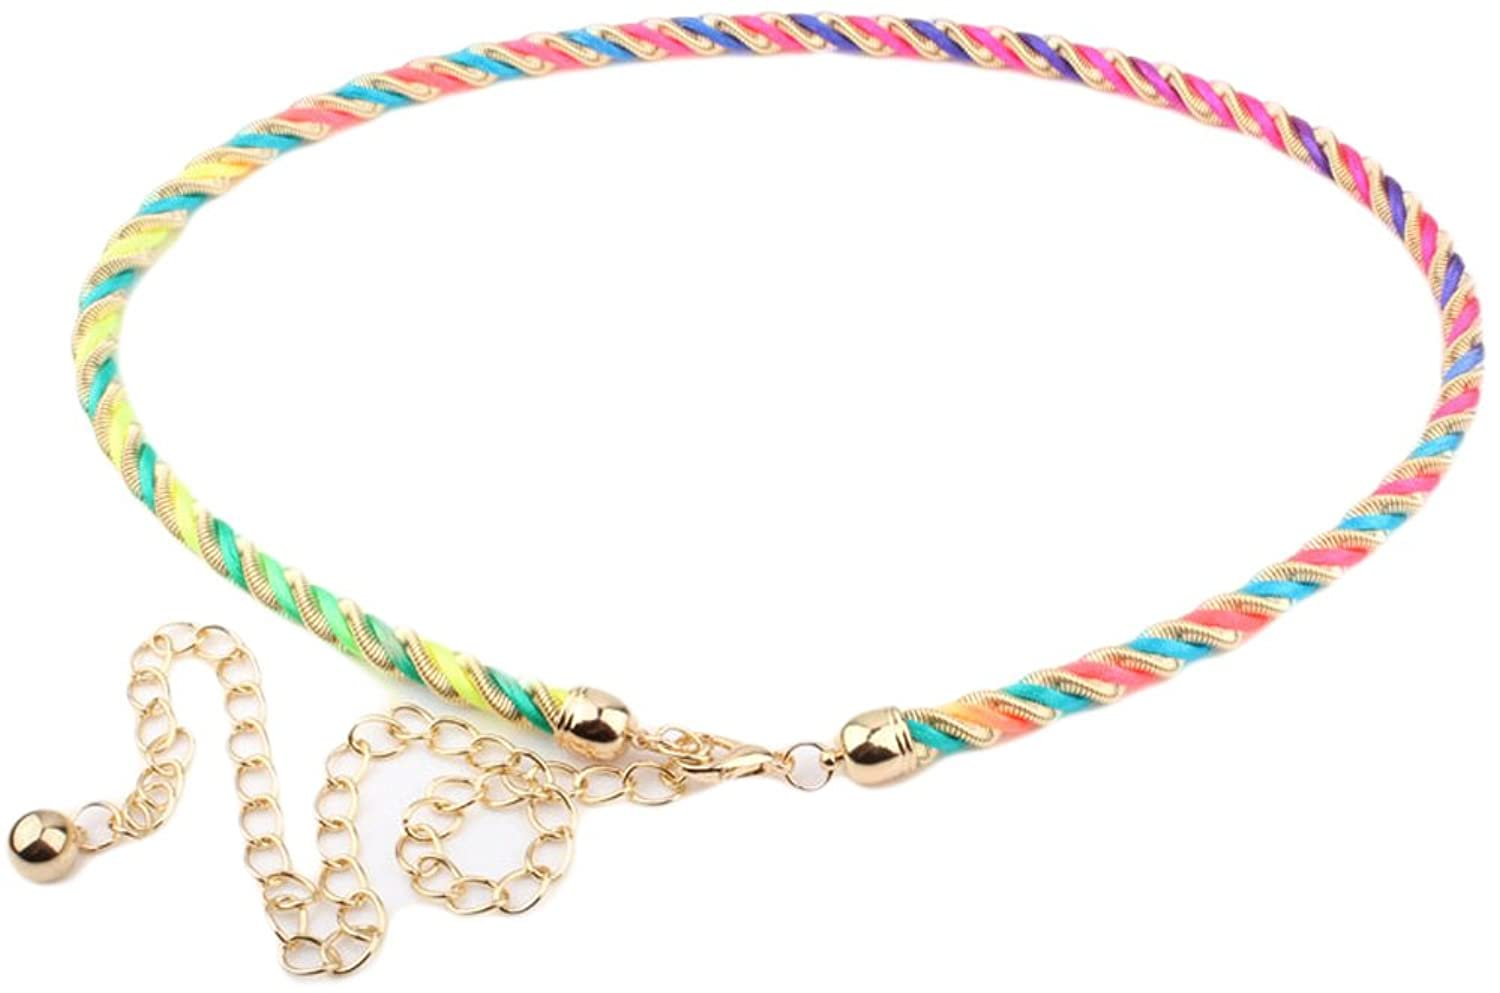 Womens Multi-color Metal Adjustable Waist Chain Belt Twisted Wire Style